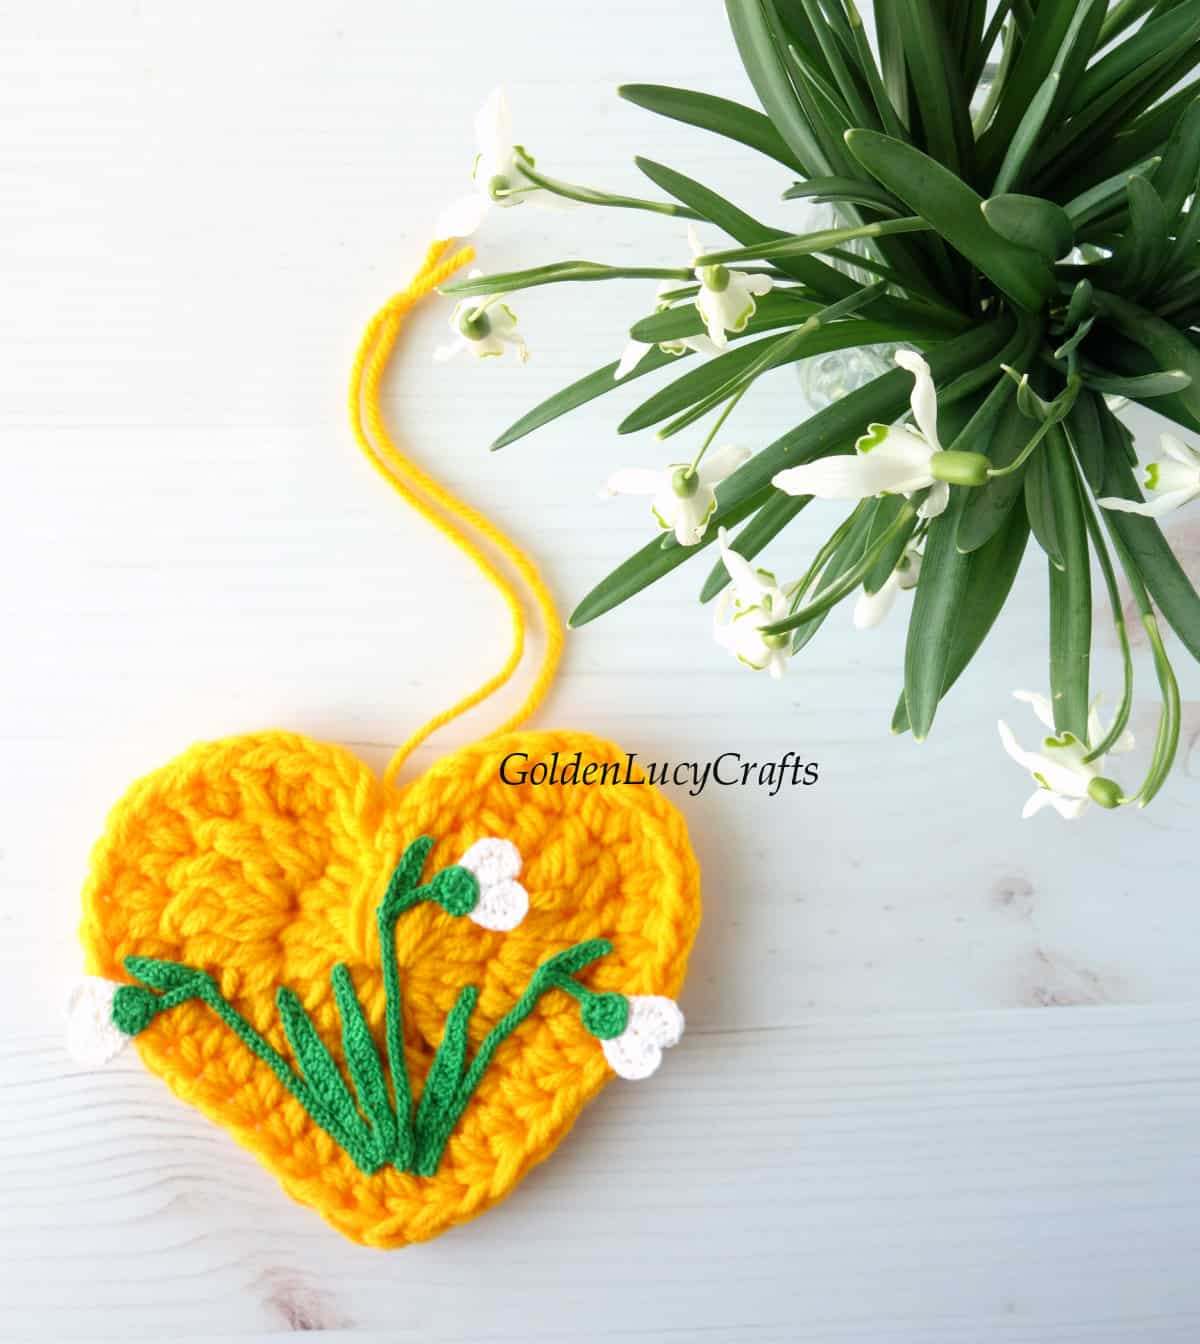 View from the top - crocheted yellow heart embellished with crocheted snowdrops and real snowdrops in a vase.